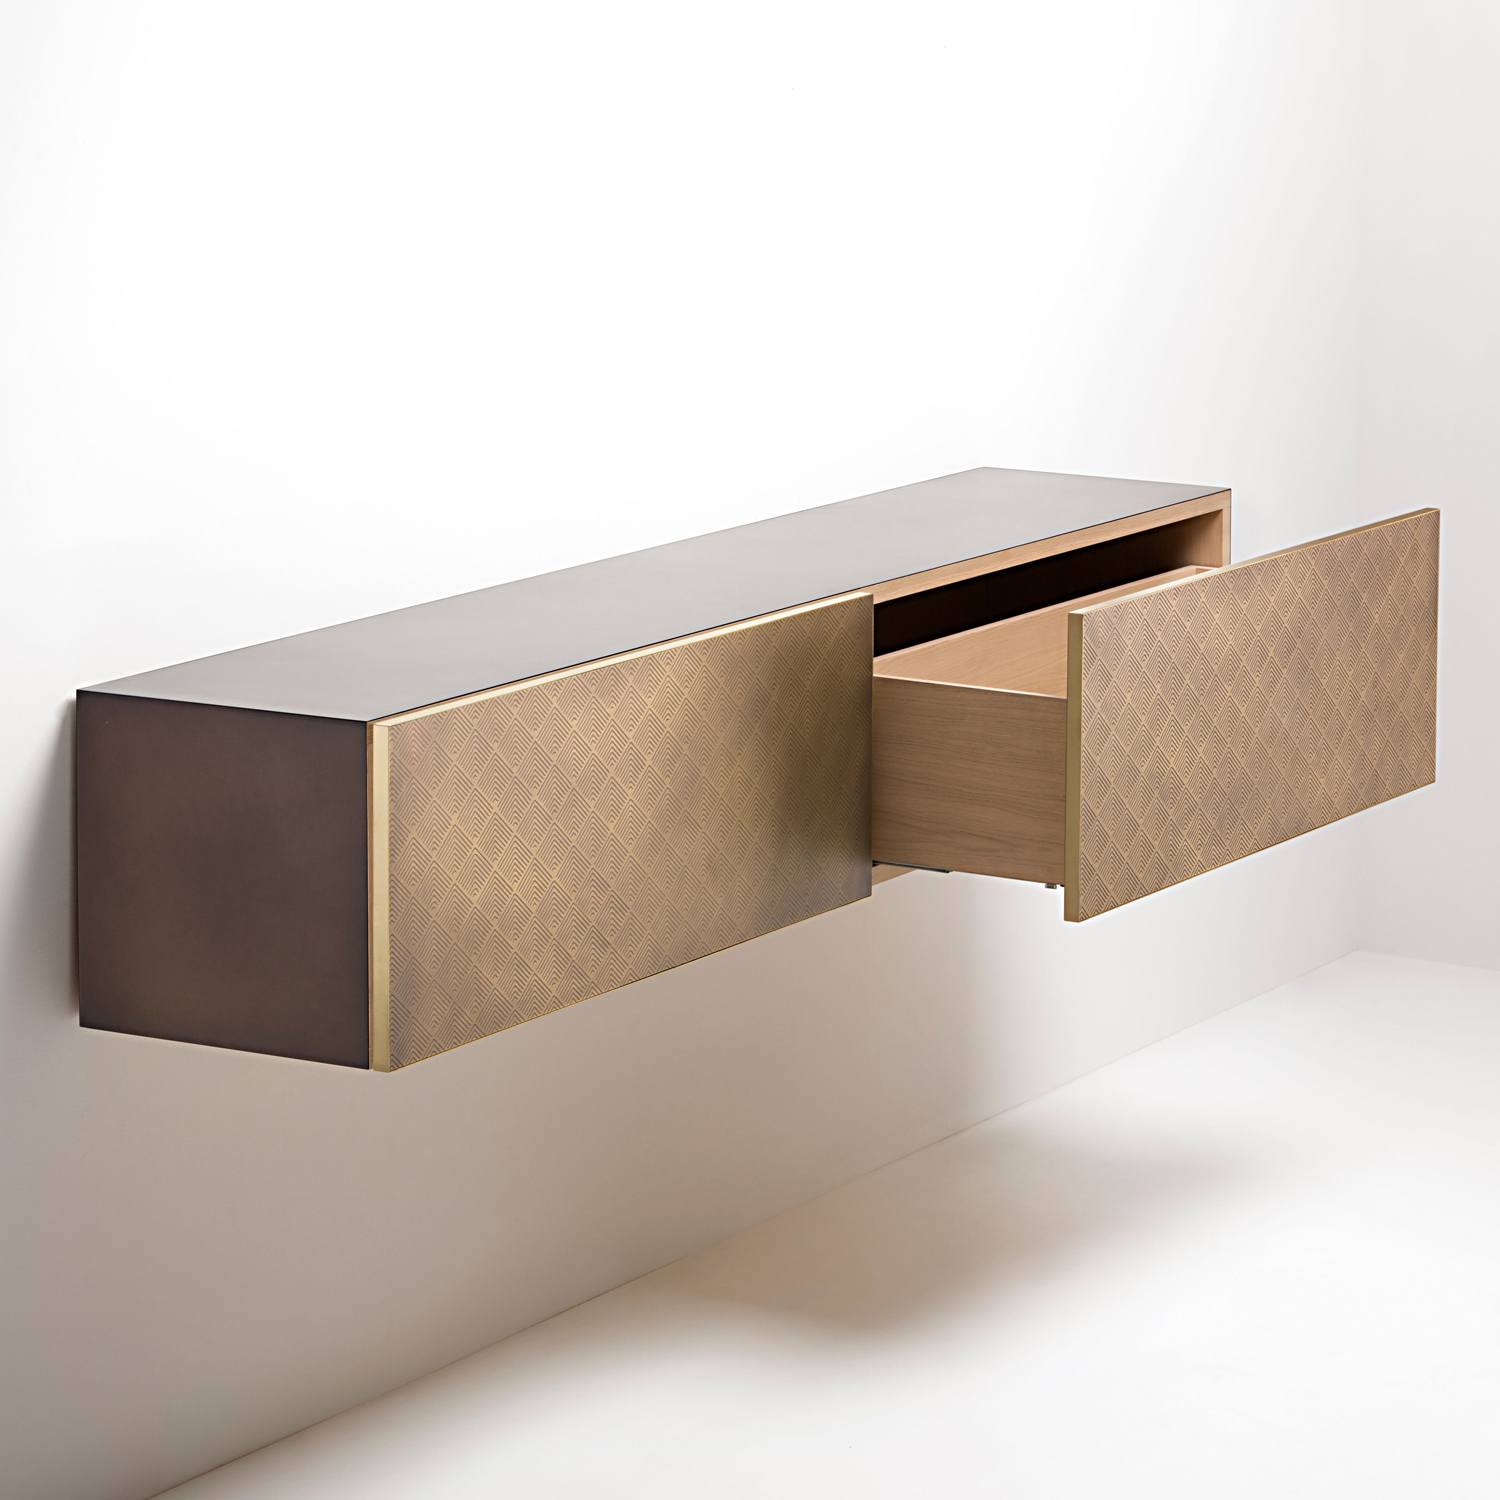 Tako Sideboard - Clean volumes for a console with quite simple lines, emphasising the nobility of the metals that clad the large faces of the drawers. Available both in a hanging and free-standing version, Tako evokes the delicate decoration anointed by the DeErosion finish, for a vaguely-Japanese inspired pattern that filters light, modulating its reflections.  Hanging or free-standing metalsideboard, characterised by two or onelarge pull-out drawers. Iron frame with a natural oak inner structure. The drawers are available in different finishes and materials.   | Matter of Stuff